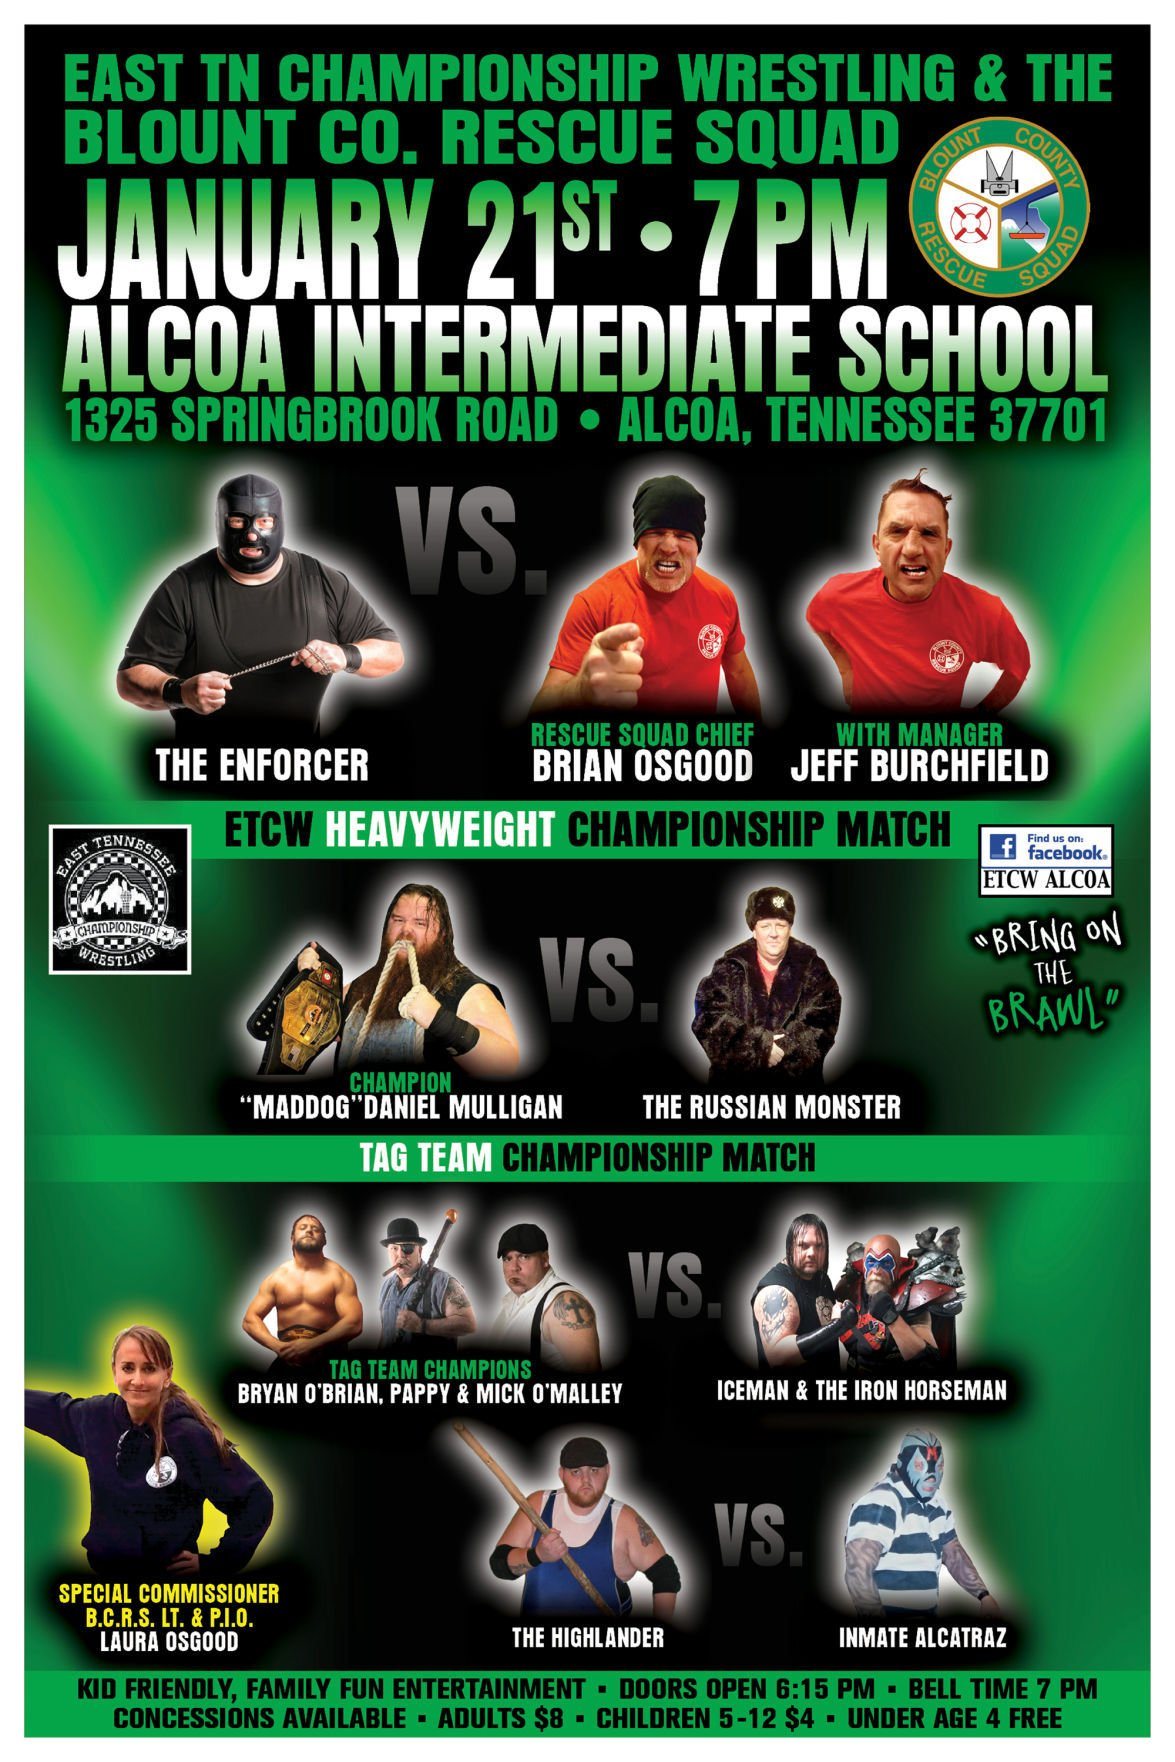 Tennessee blount county alcoa - Enforcer Versus Squadfather Wrestlers Clash To Benefit Blount County Rescue Squad